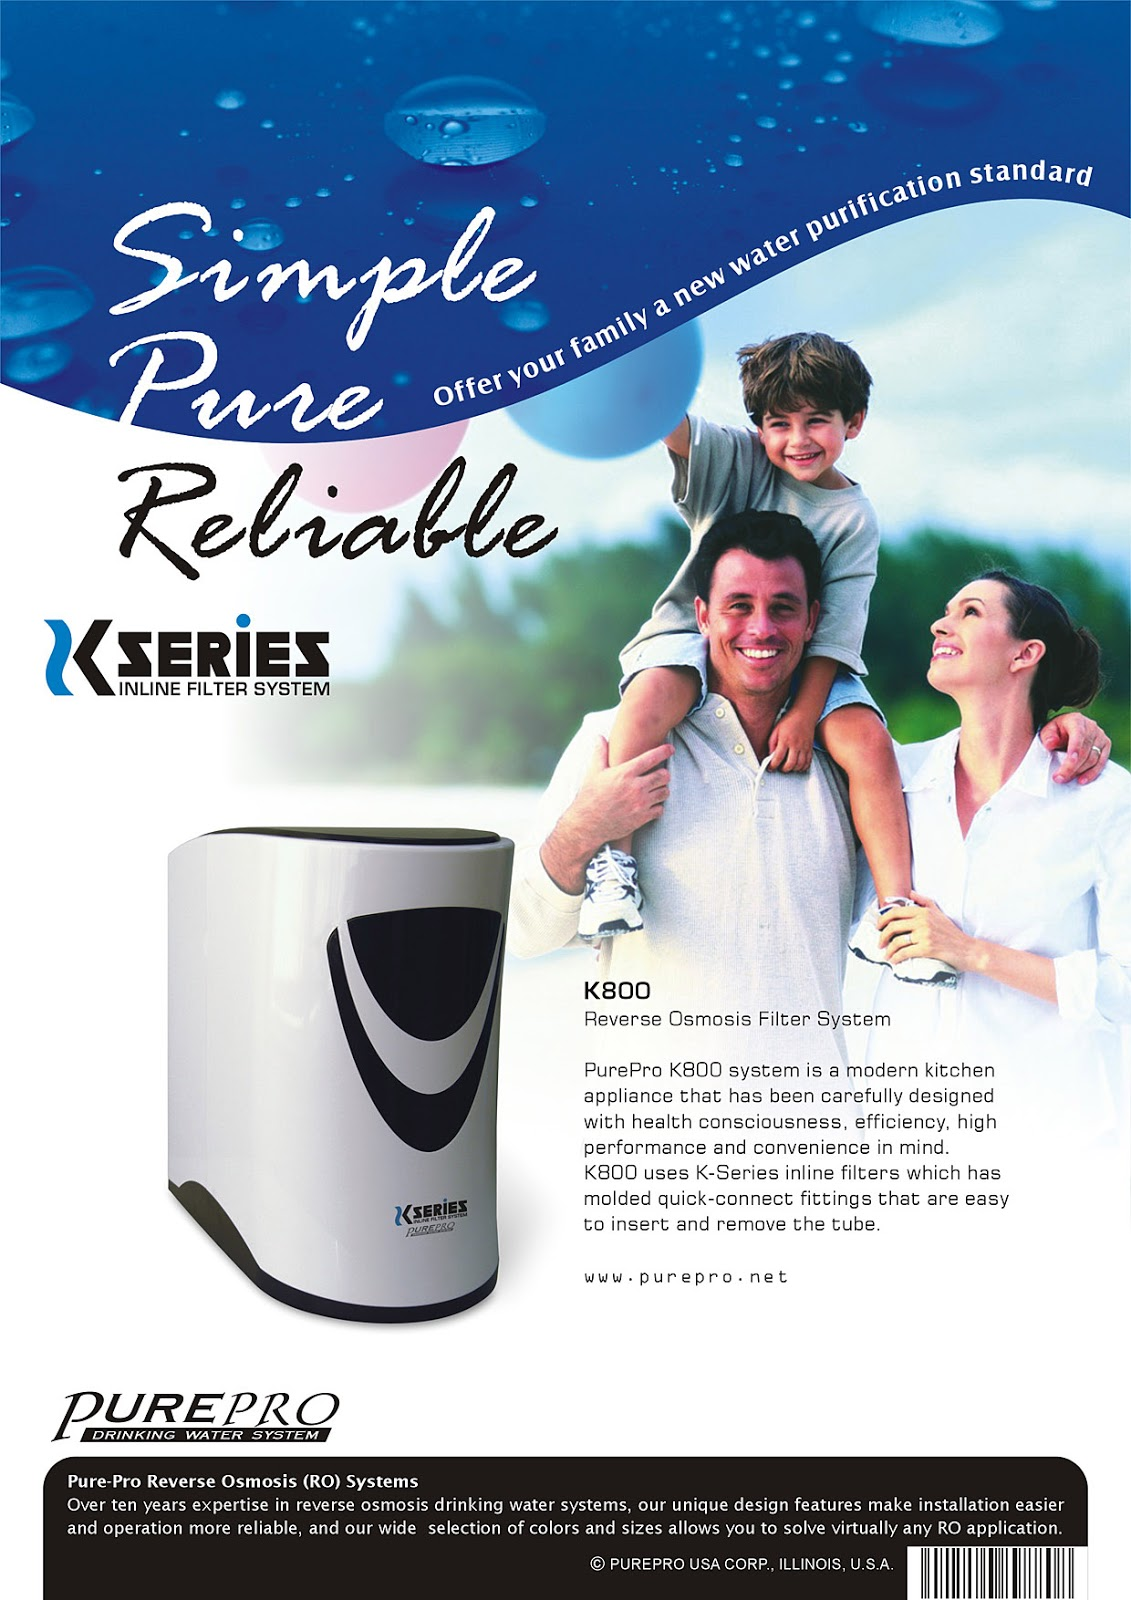 PurePro® K800 Reverse Osmosis Water Filtration System